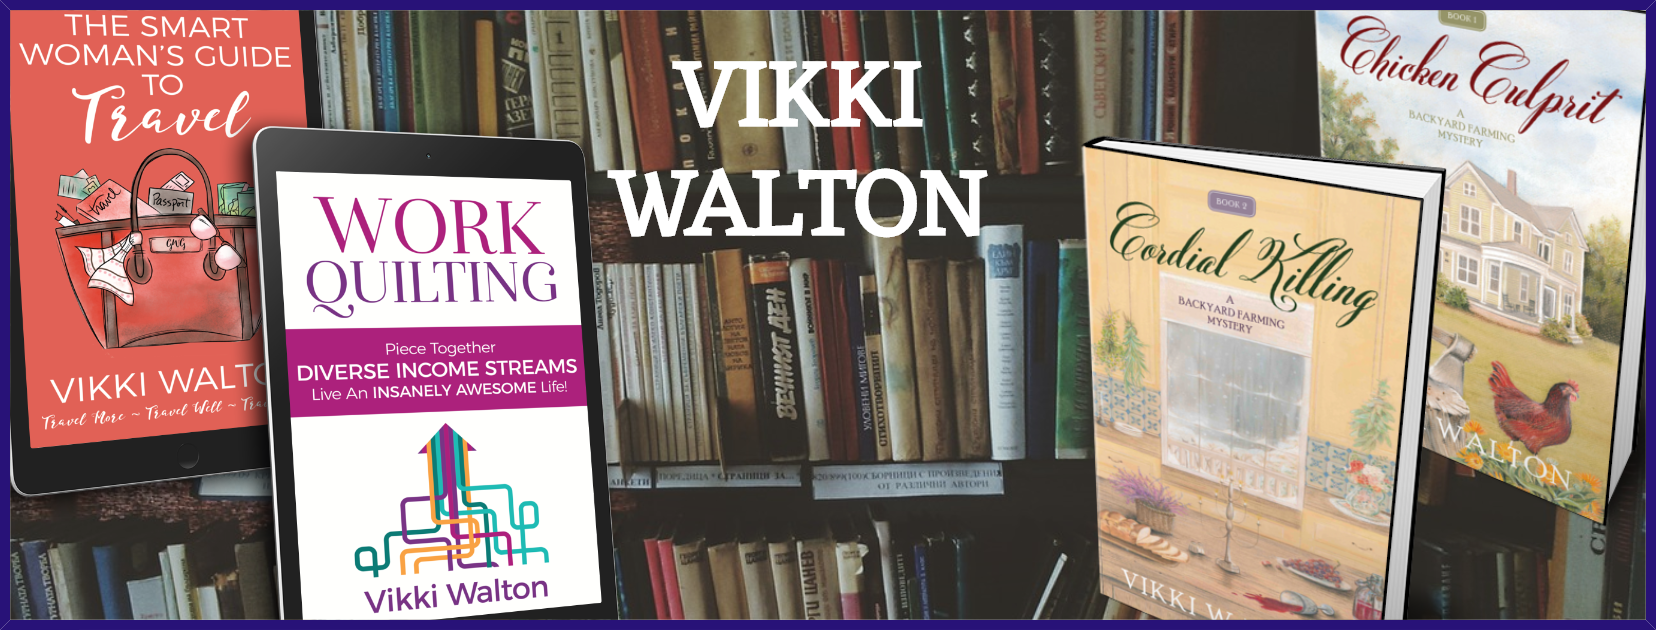 vikki walton author